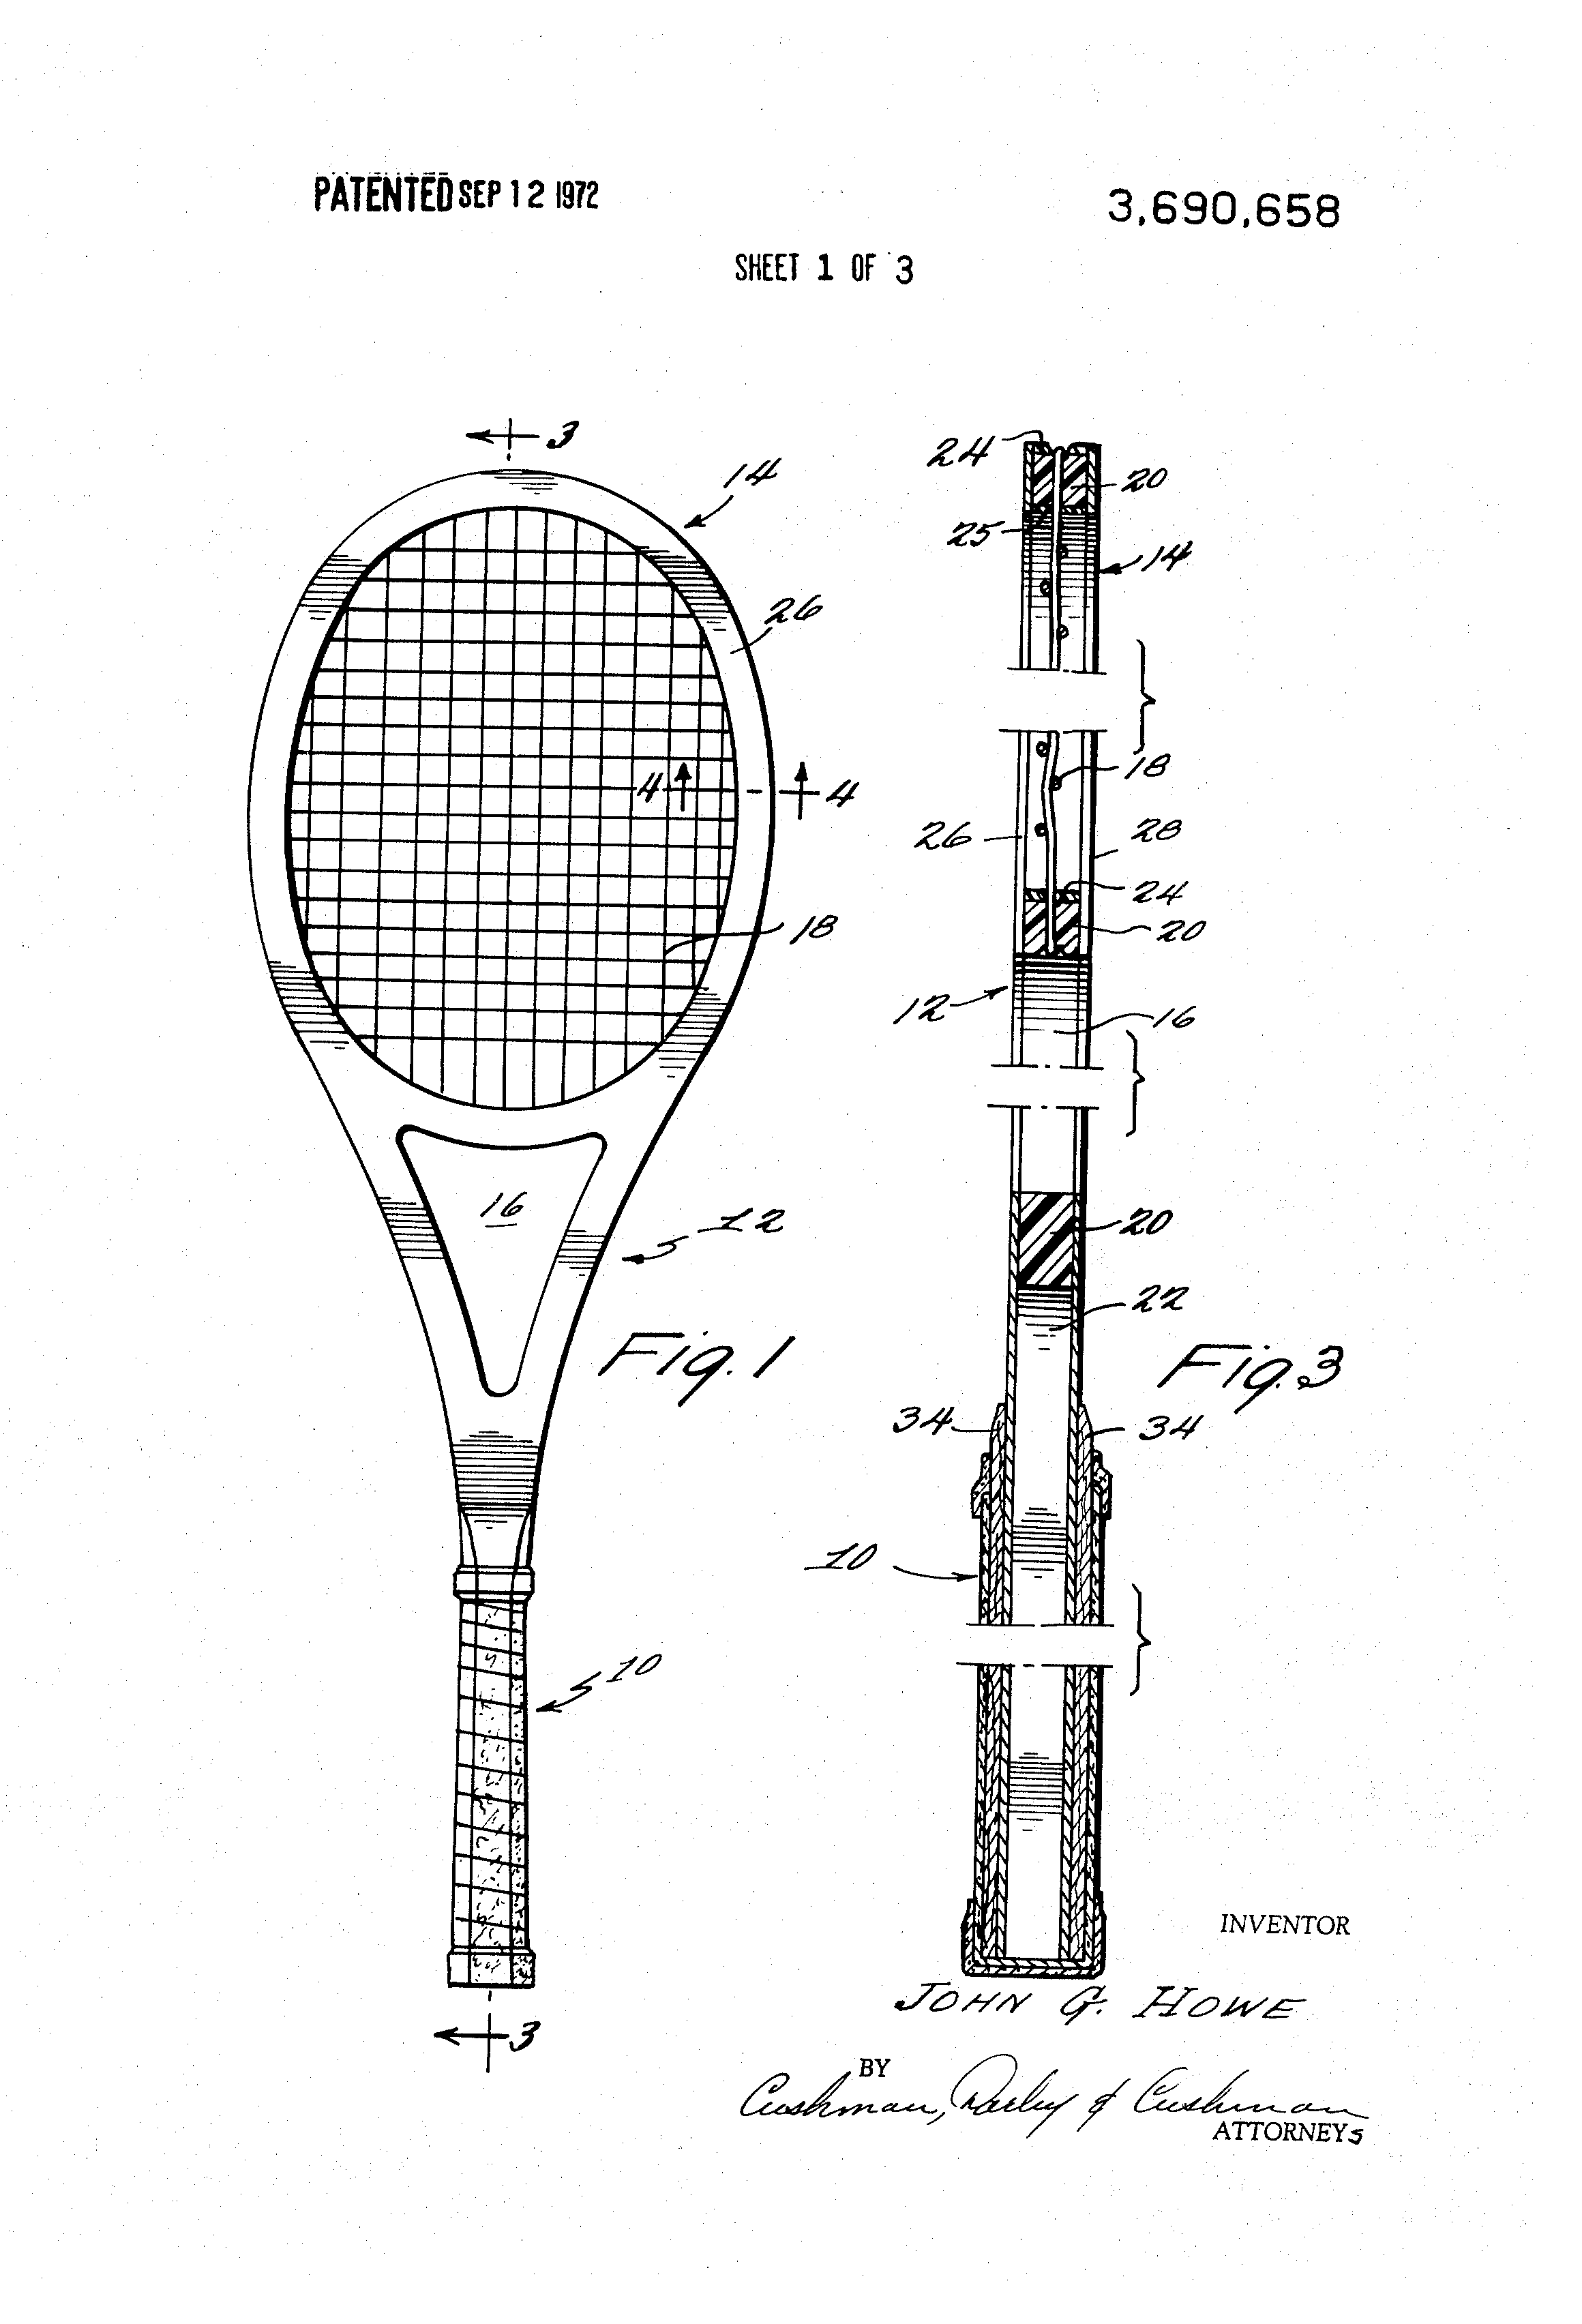 What material properties are needed in a tennis racket frame?